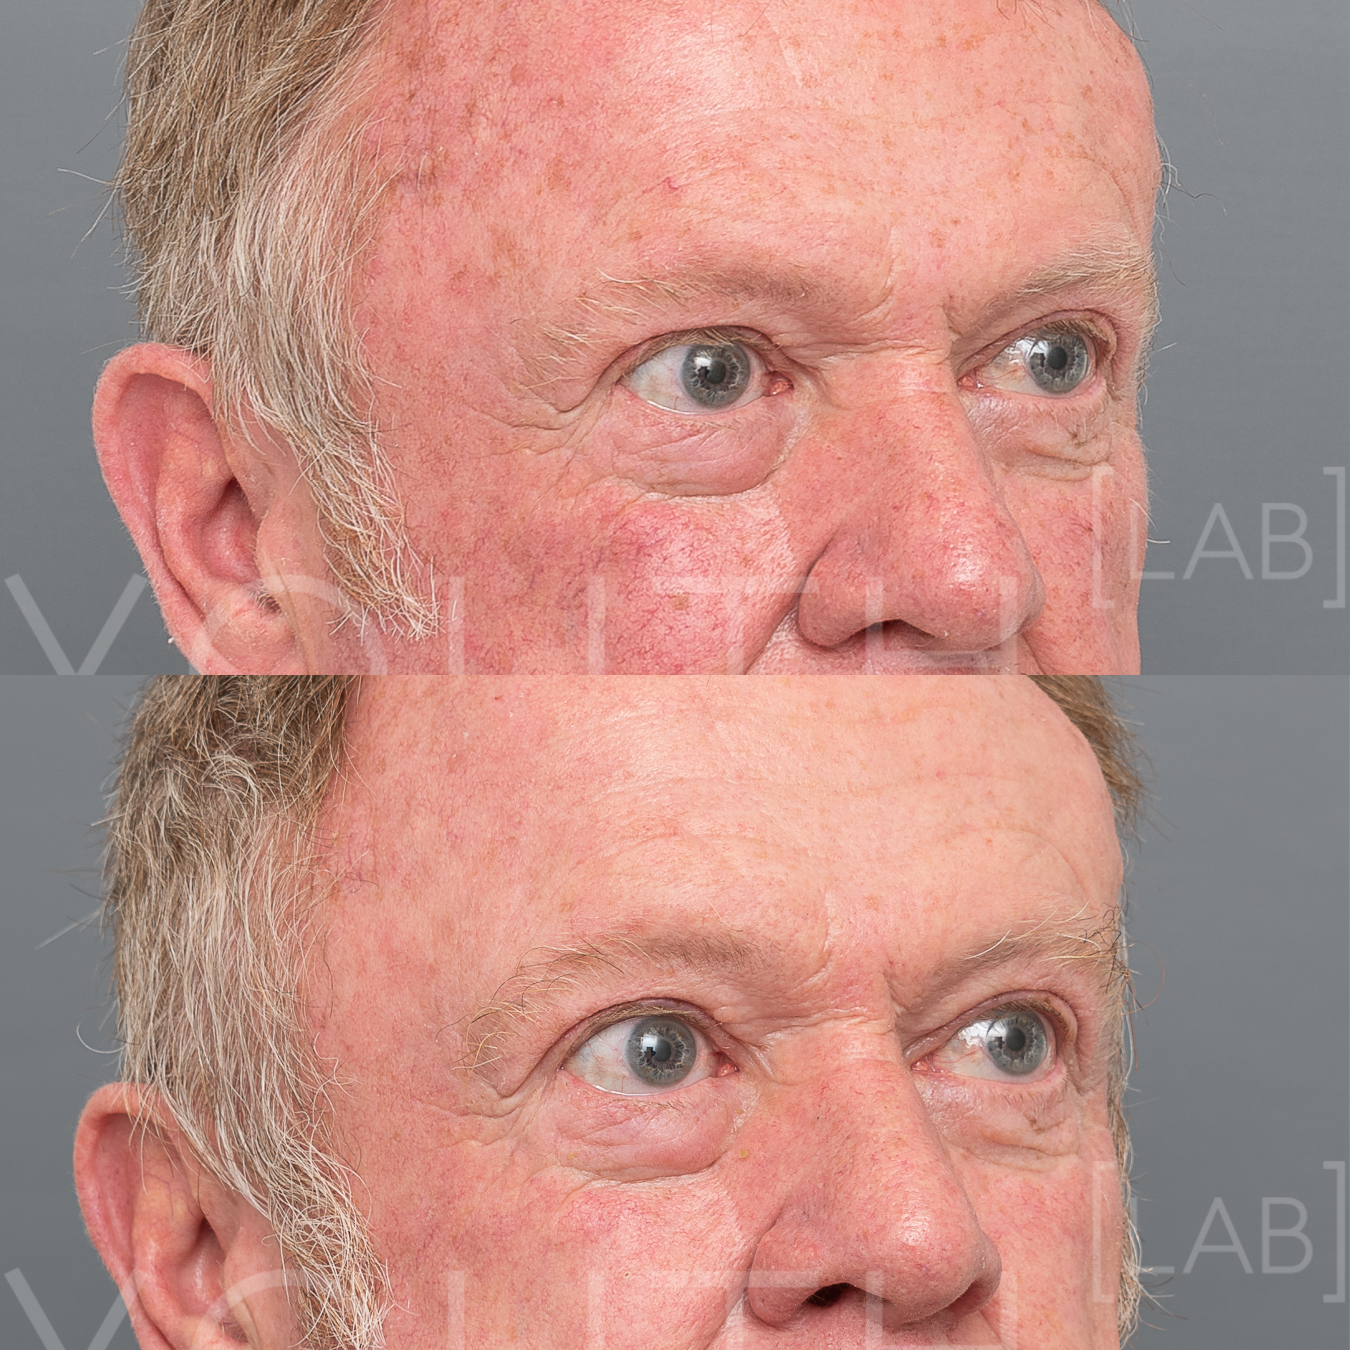 Click Image To Enlarge    Treatment: 1 x Halo w/ BBL Photorejuvenation Targeting: Redness & Pigment  Photo Filter: No Filter Close Up Result: Reduced pigment and reduced redness, improving overall skin tone and condition